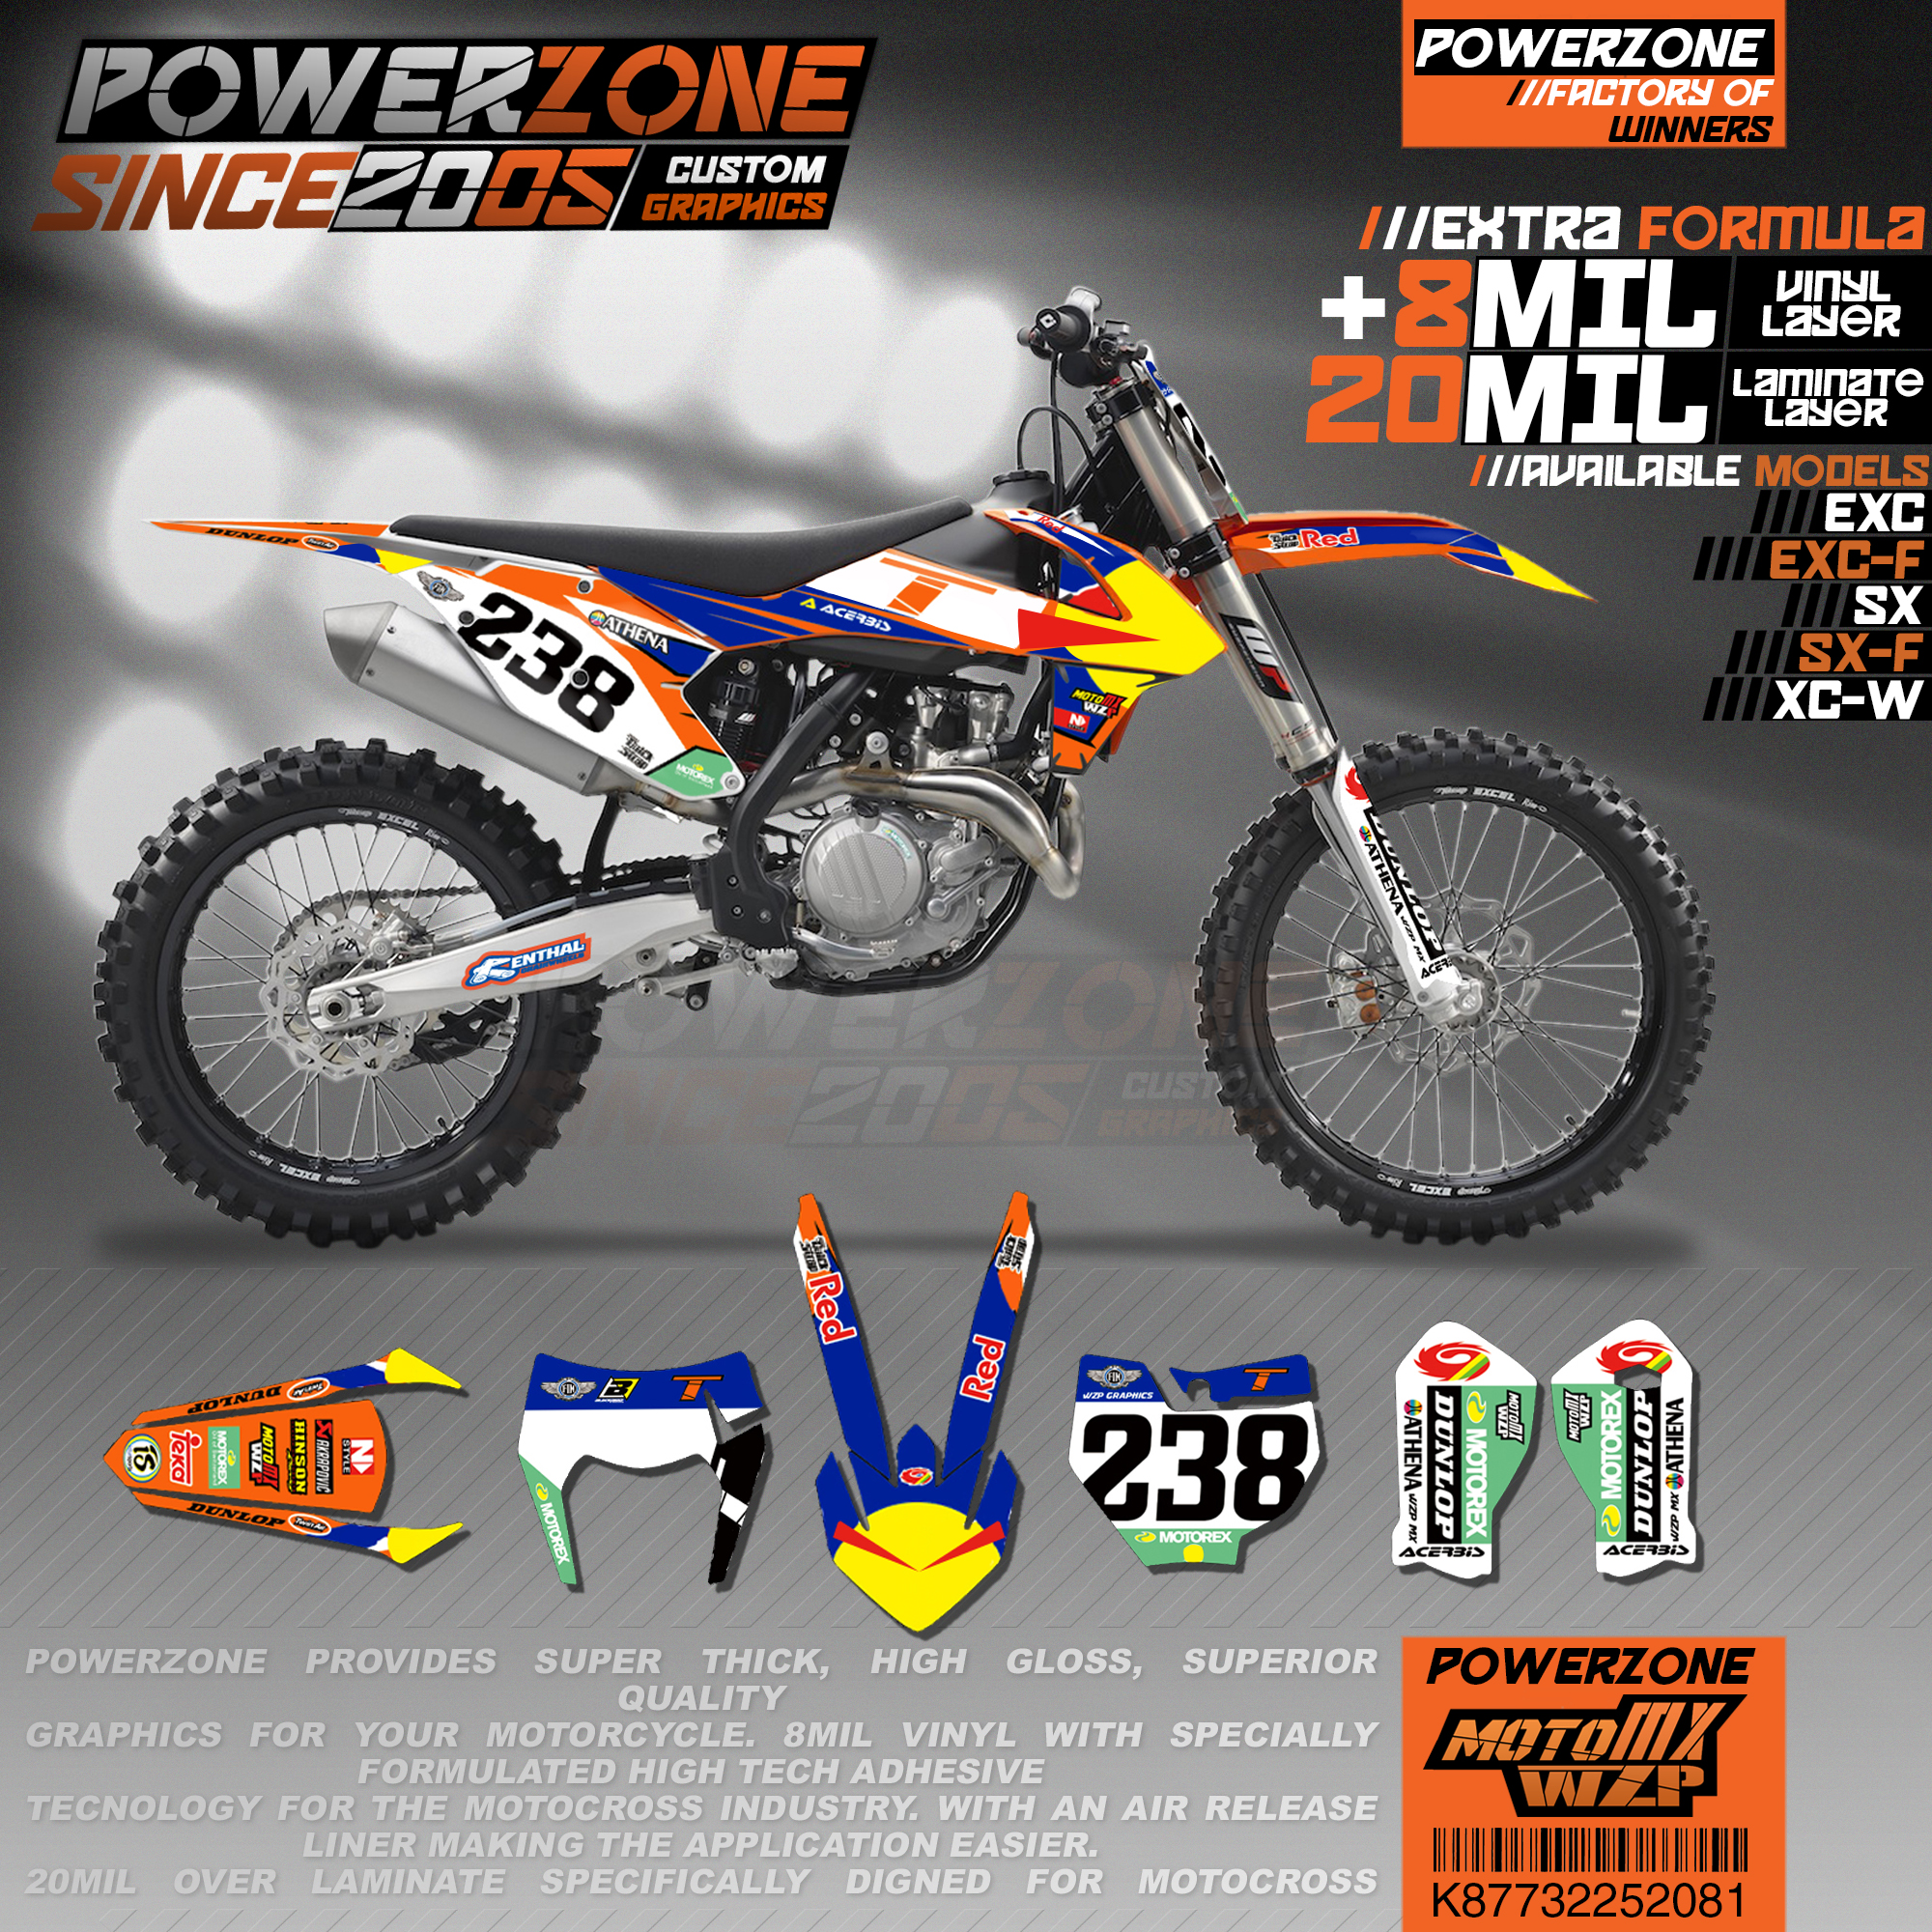 PowerZone Custom Team Graphics Backgrounds Decals 3M Stickers Kit For KTM SX SXF MX EXC XCW